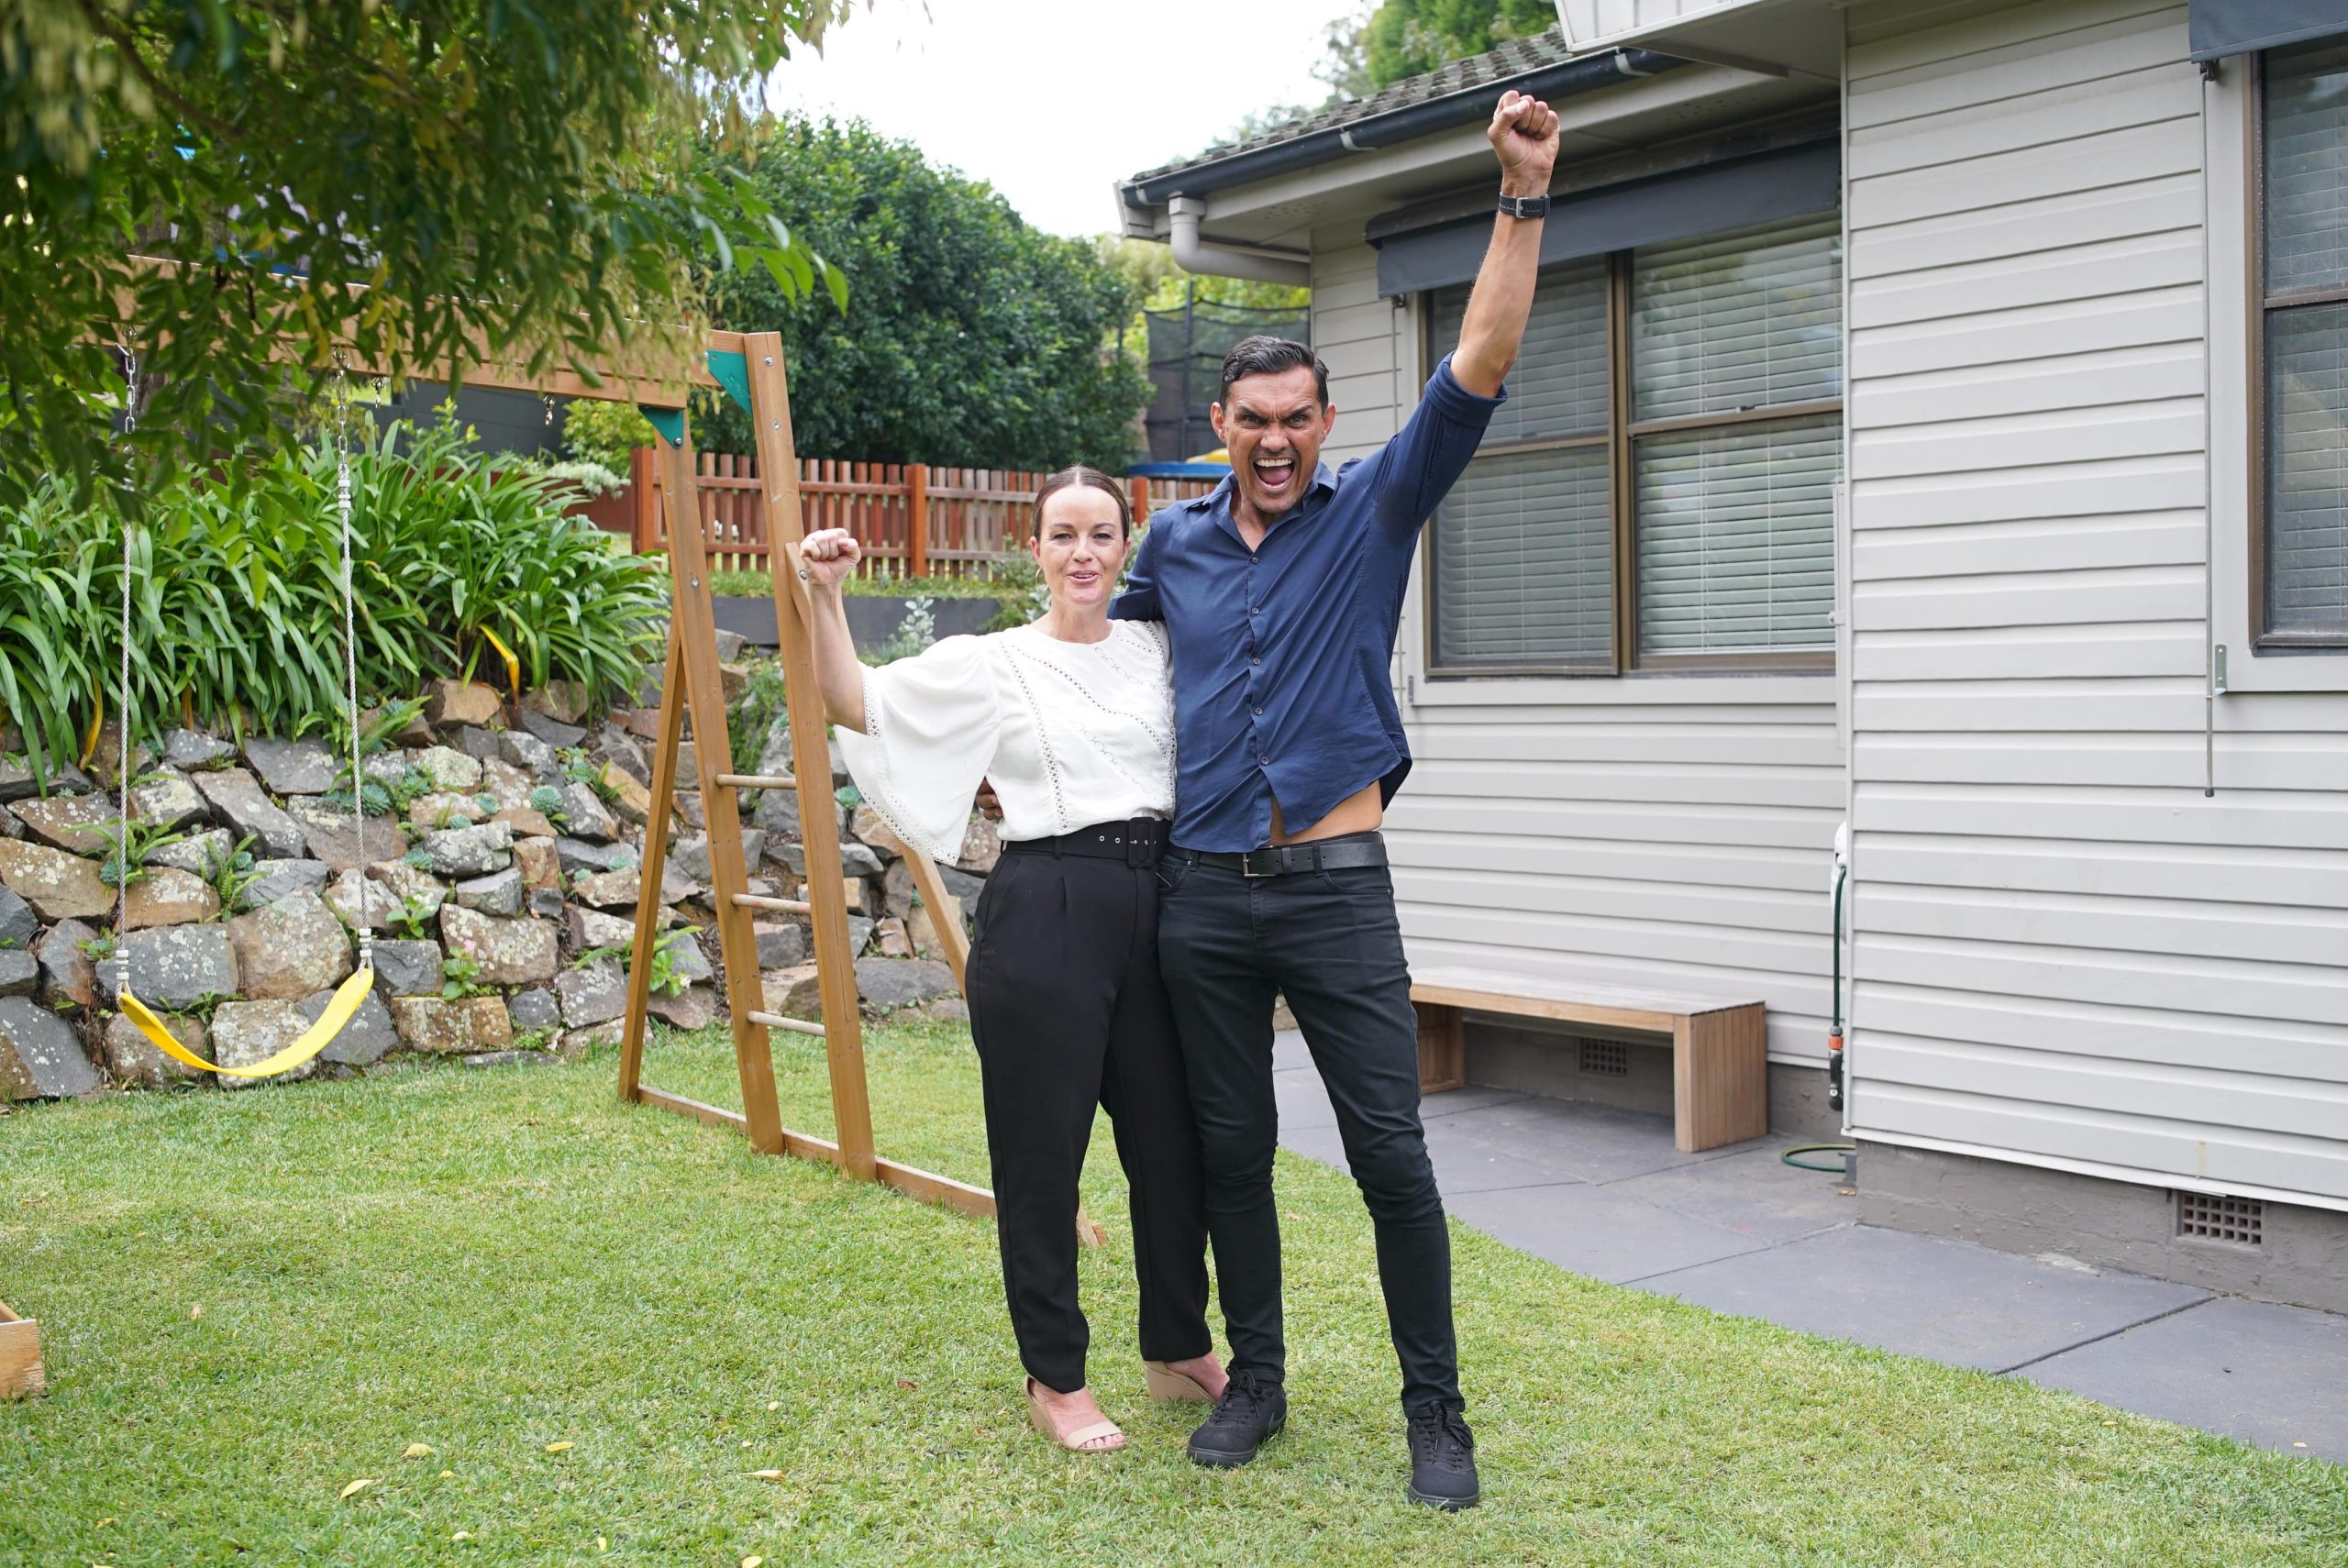 Couple standing in front of house with hands in air